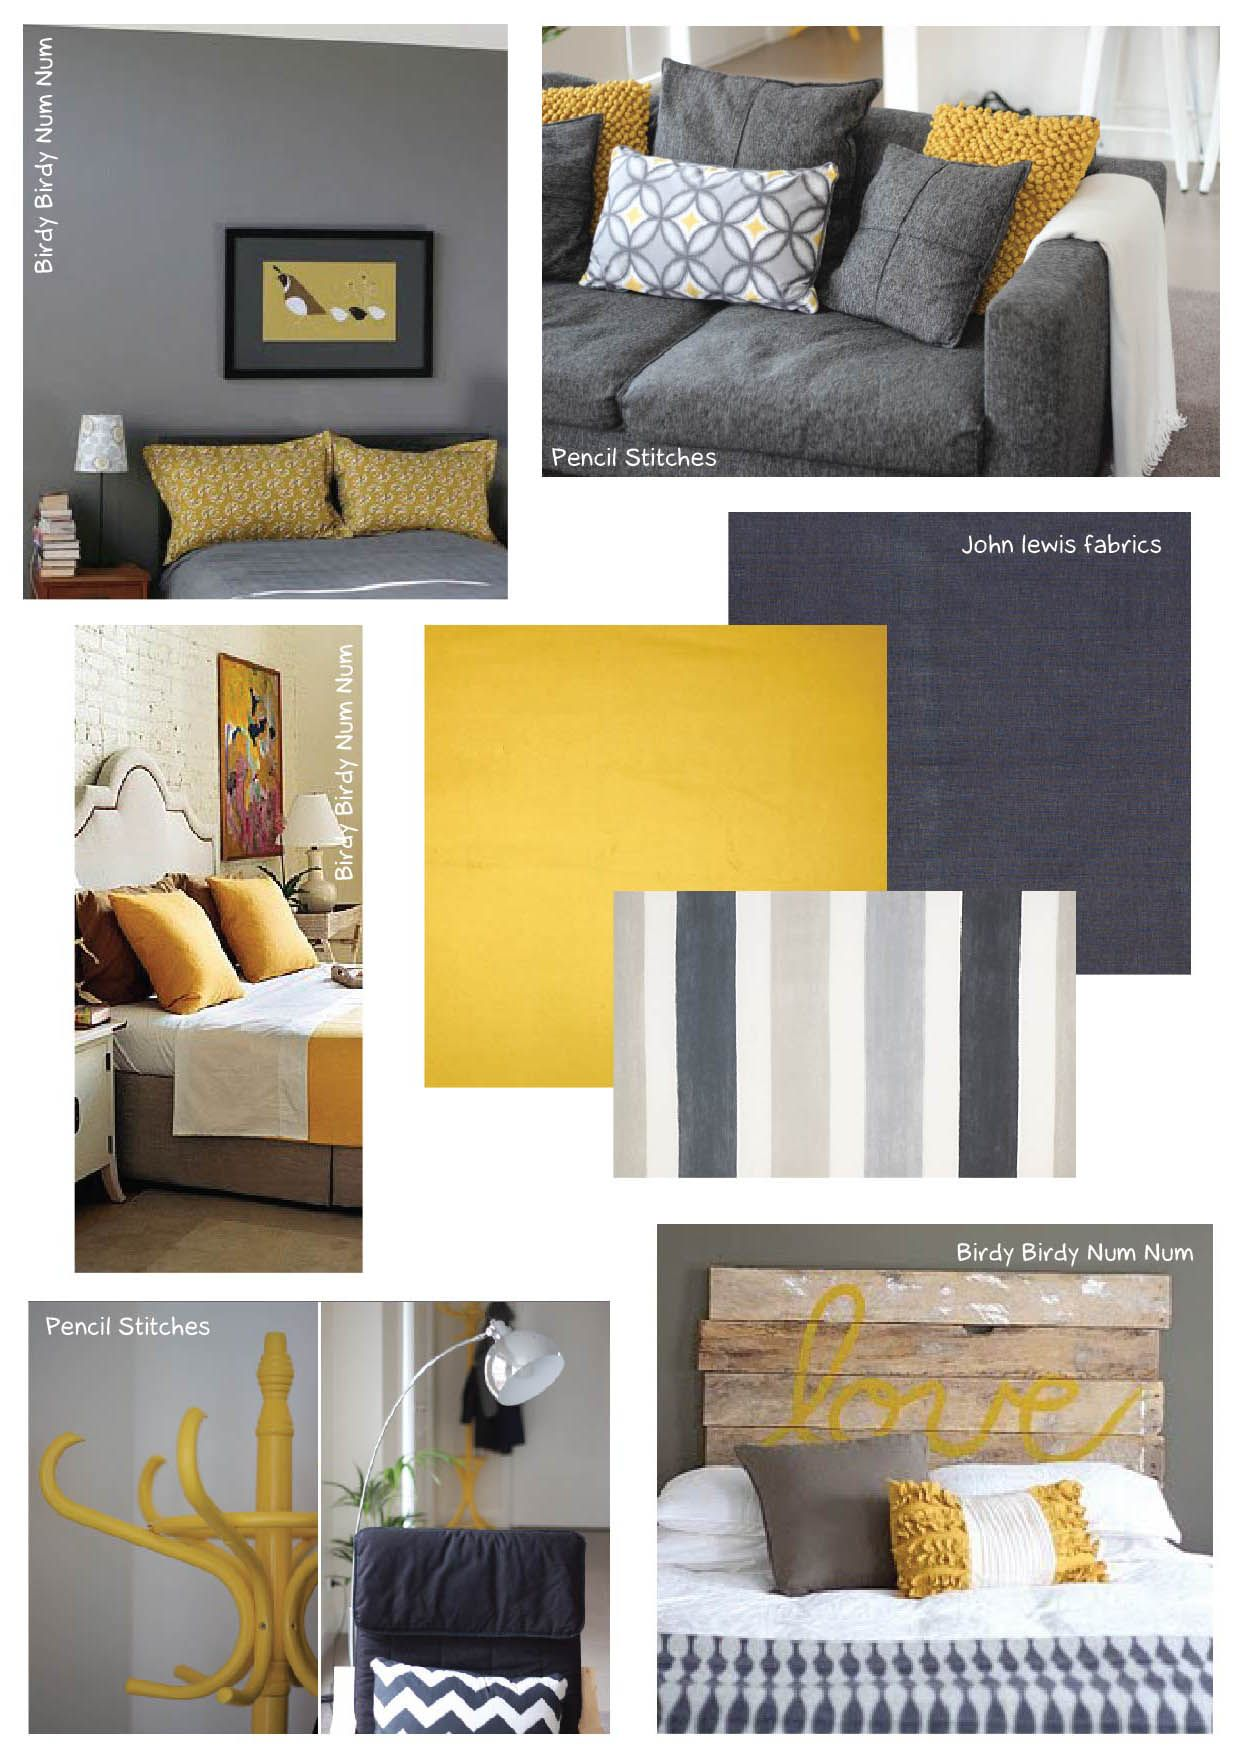 Charcoal Furniture What Color Walls A Mustard And Charcoal Interior Freshen Up I 39m Planning